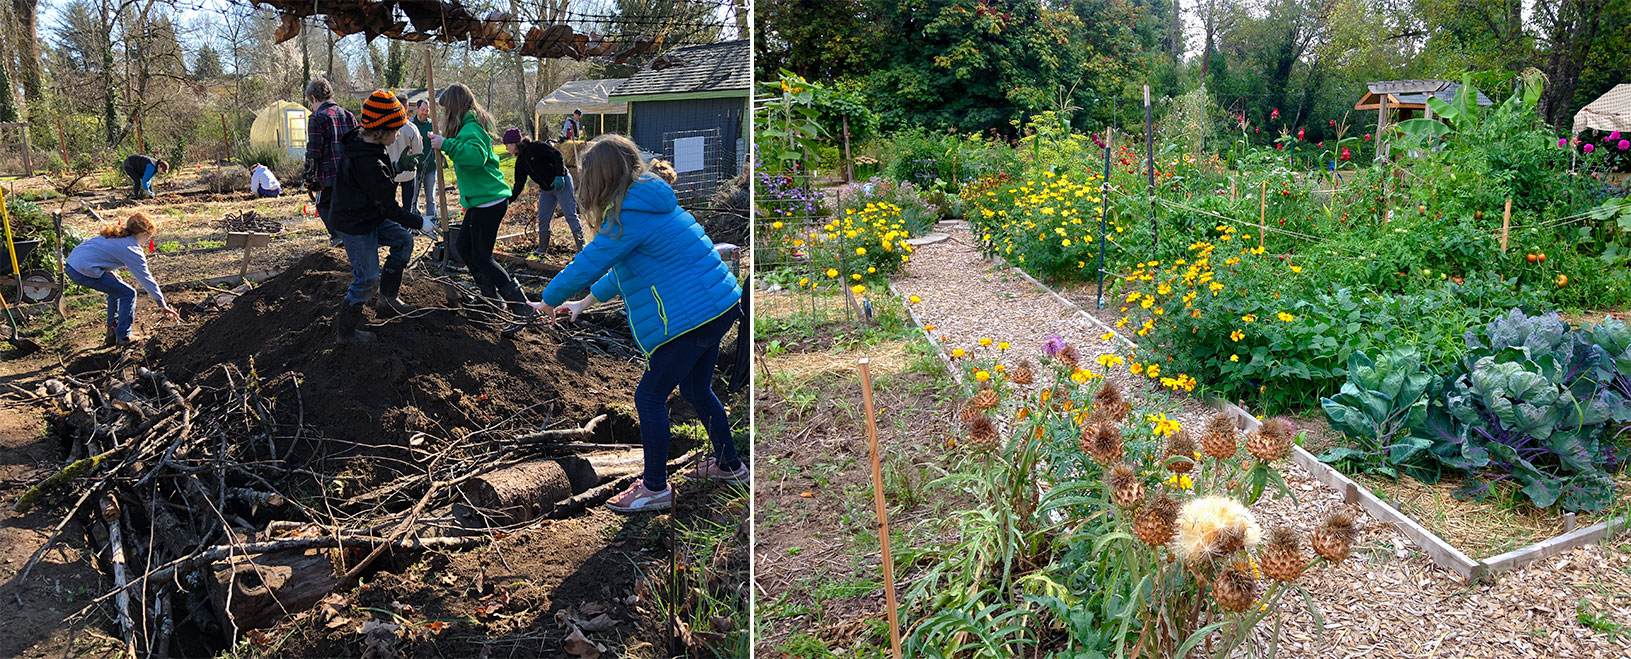 On the left, students stand atop mounds of earth and branches, as they compact them. On the right, the garden after the mounds were finished, with a gently-rolling surface covered in flower beds with colorful blooms.